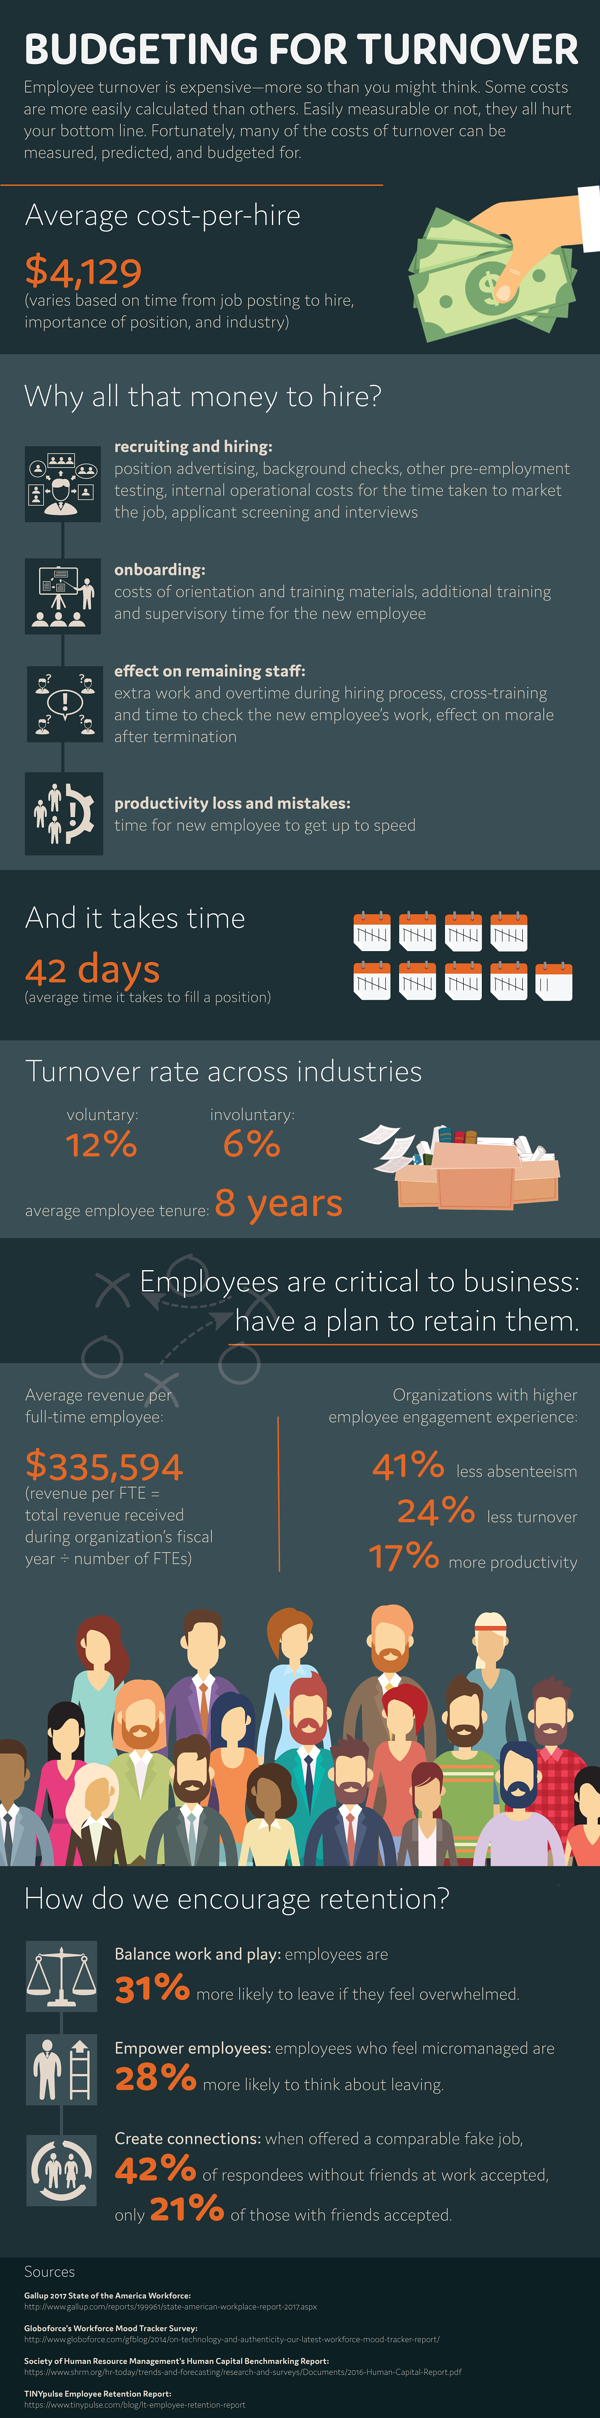 Terminations and Budgeting for Employee Turnover